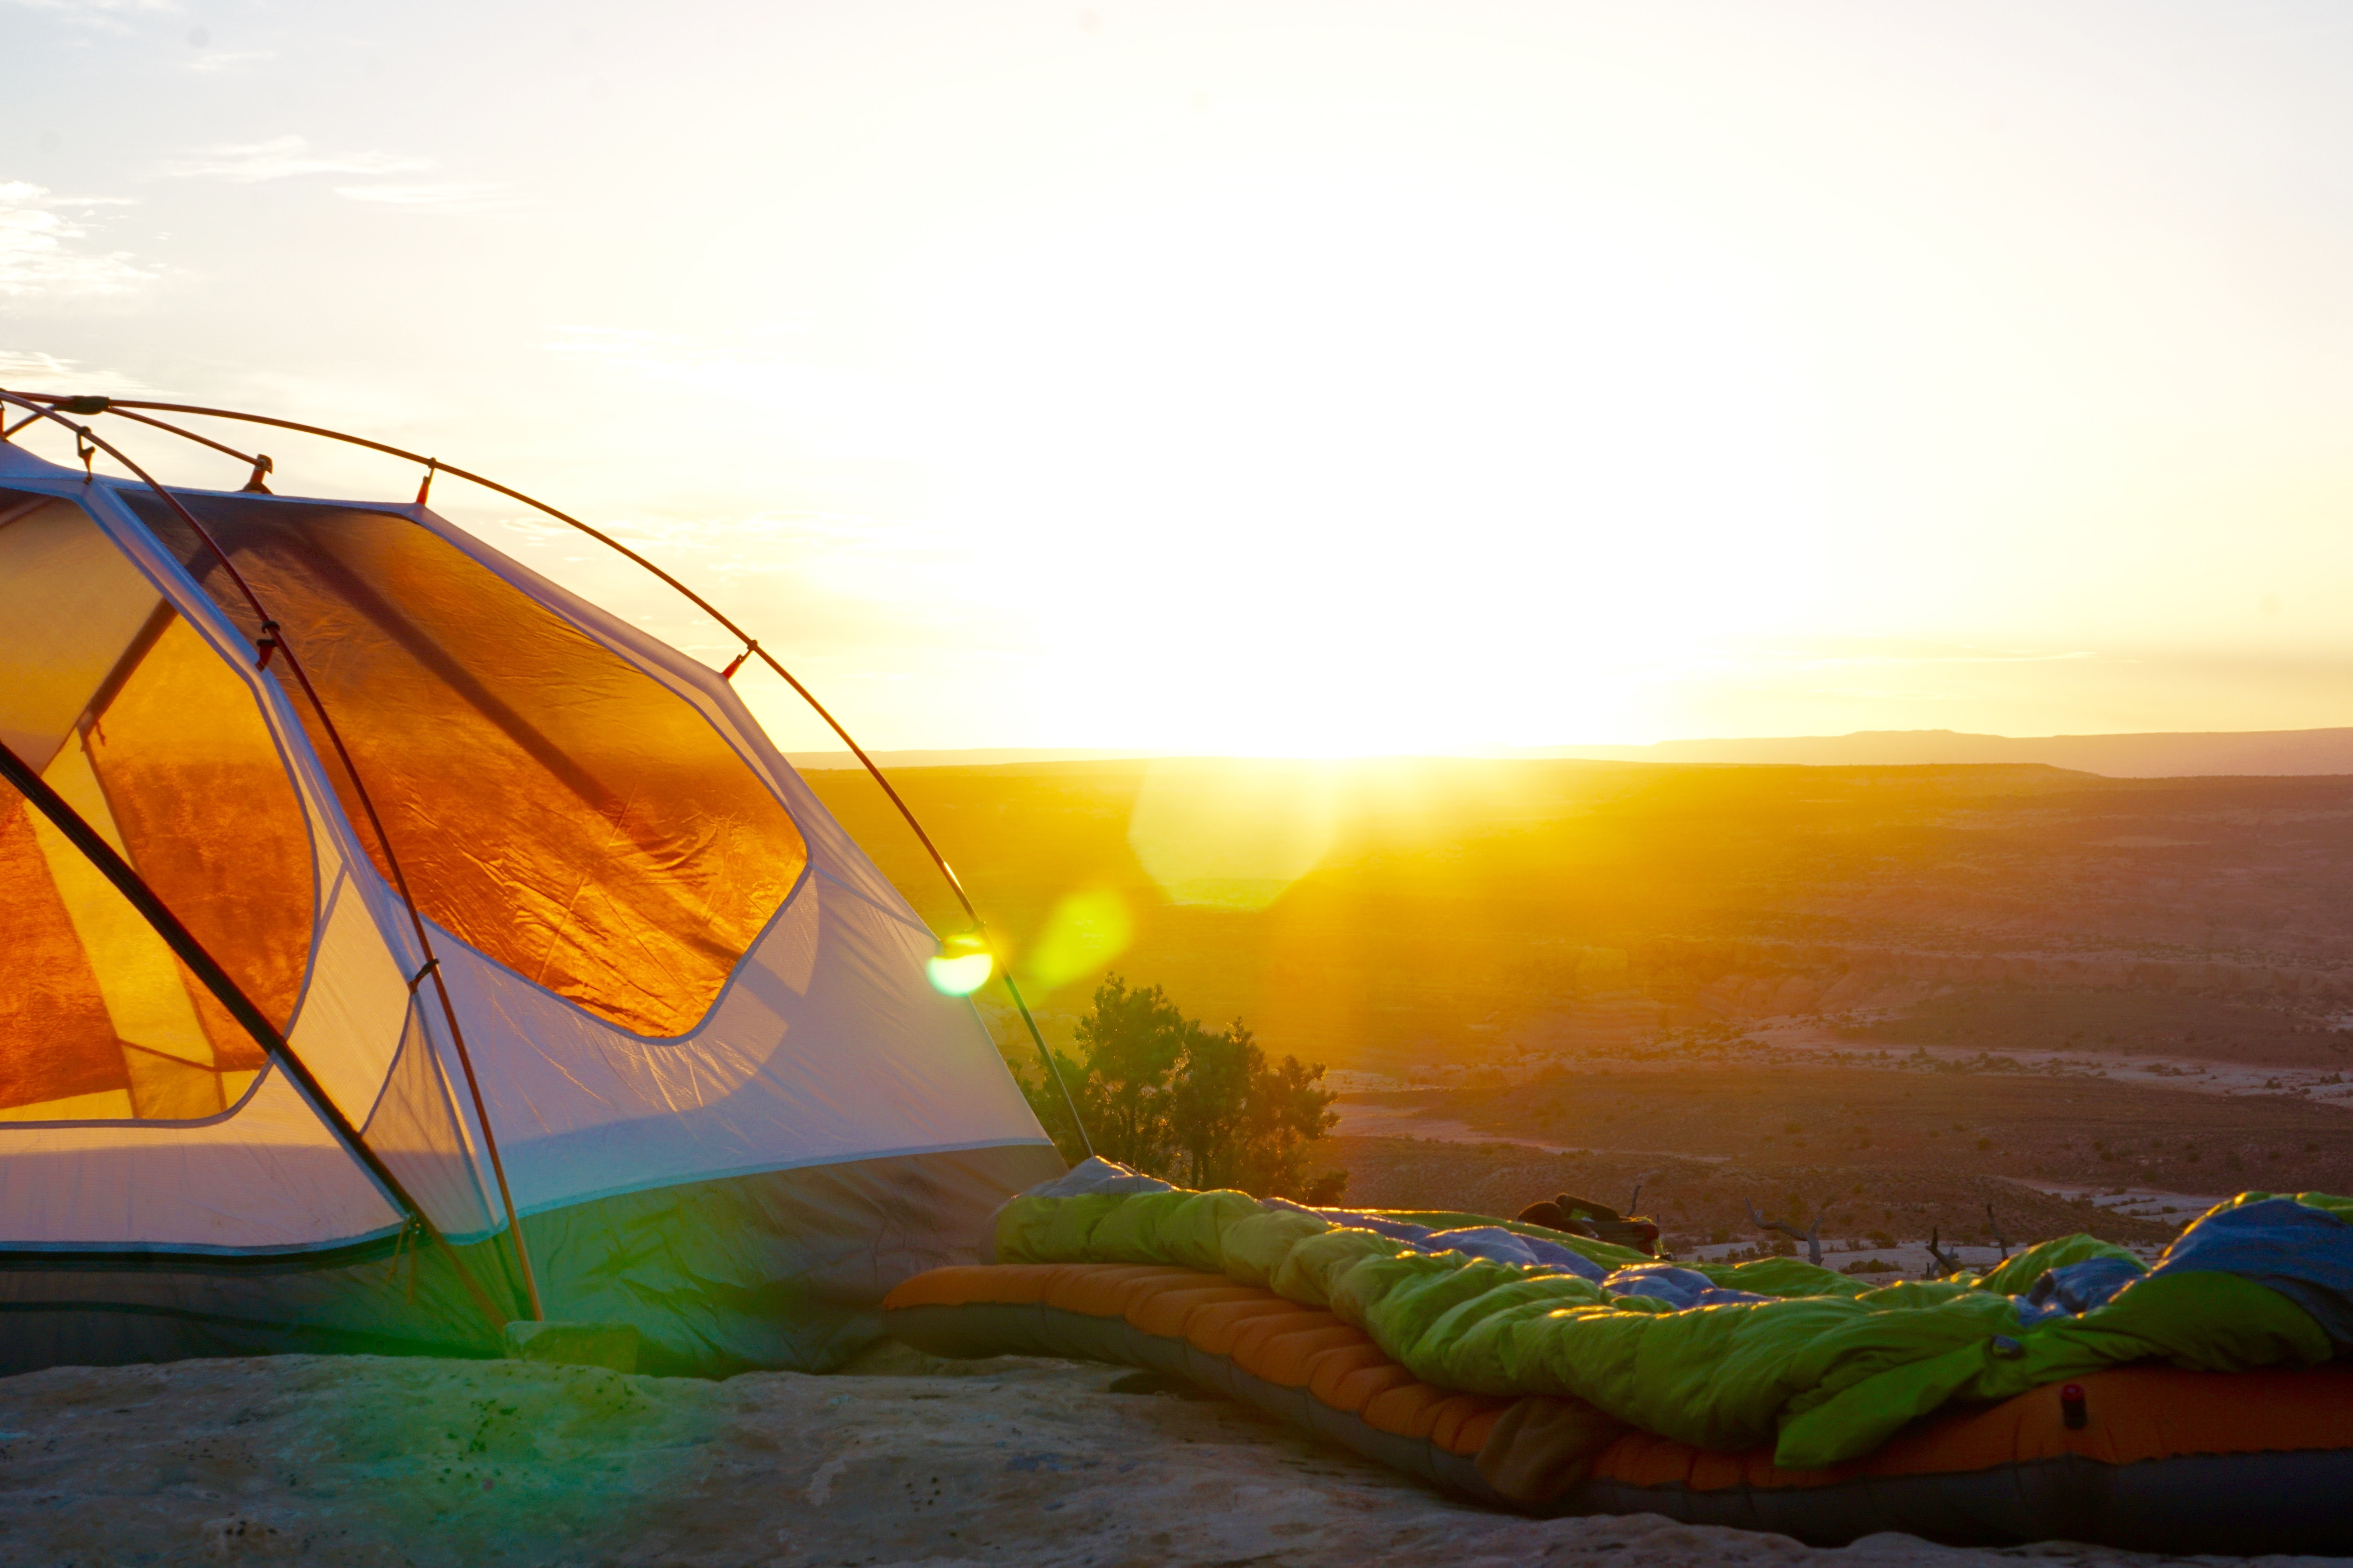 Sleeping bags next to a tent in the wilderness at sunrise